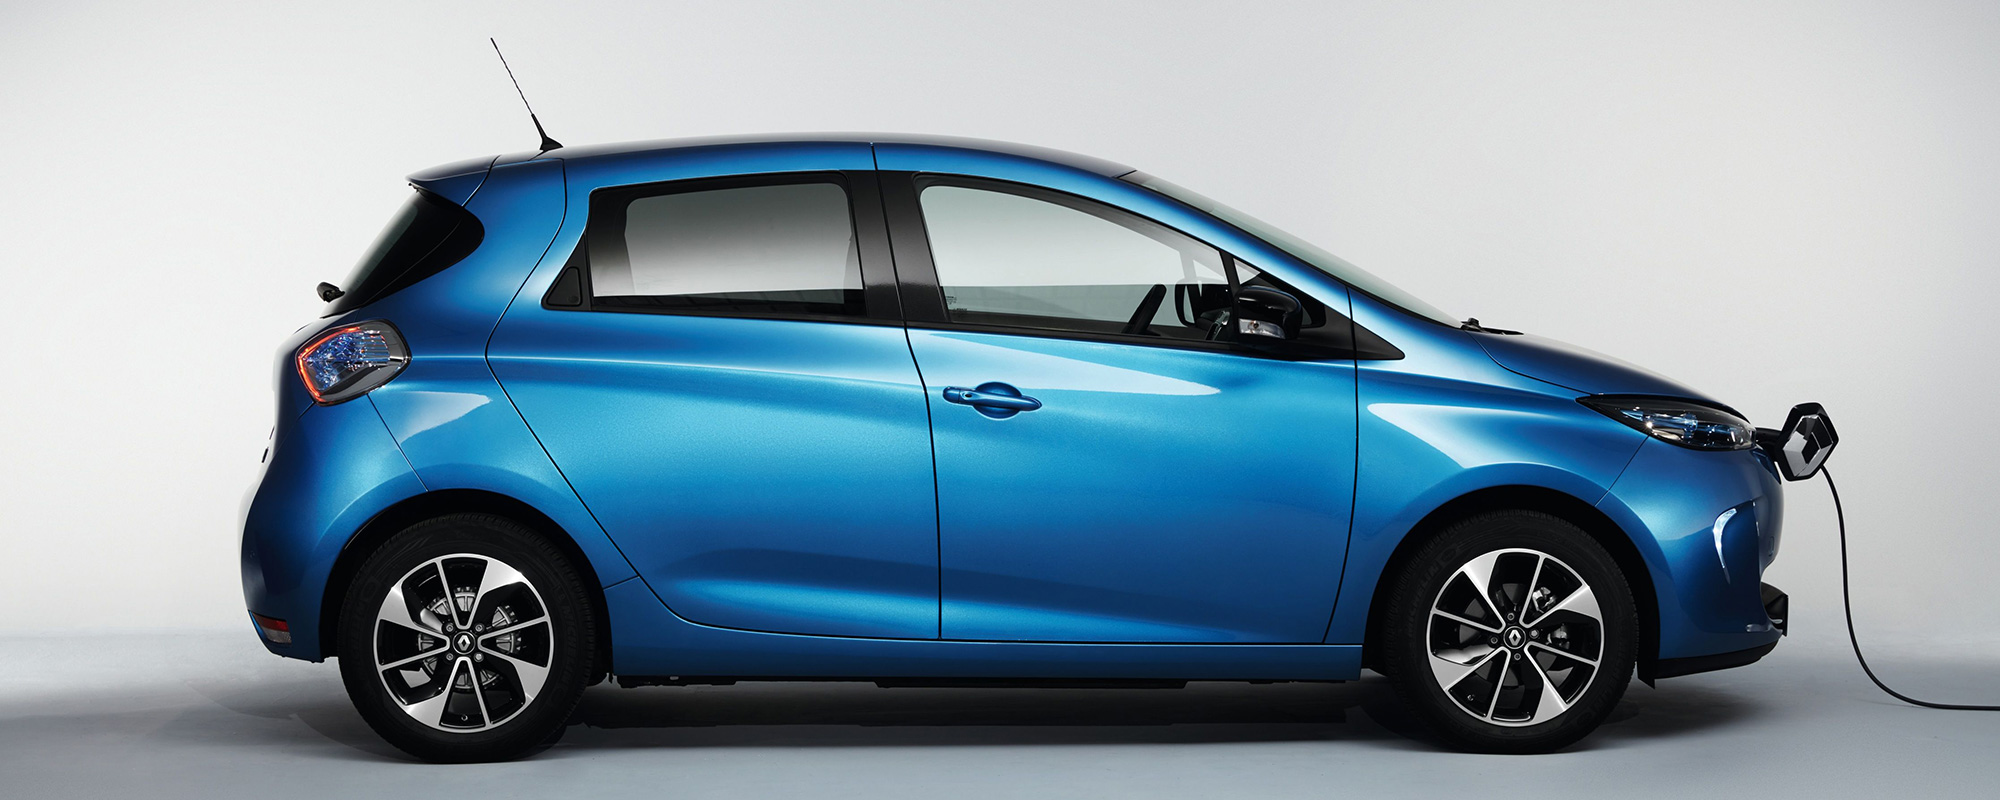 Renault ZOE an der Ladestation